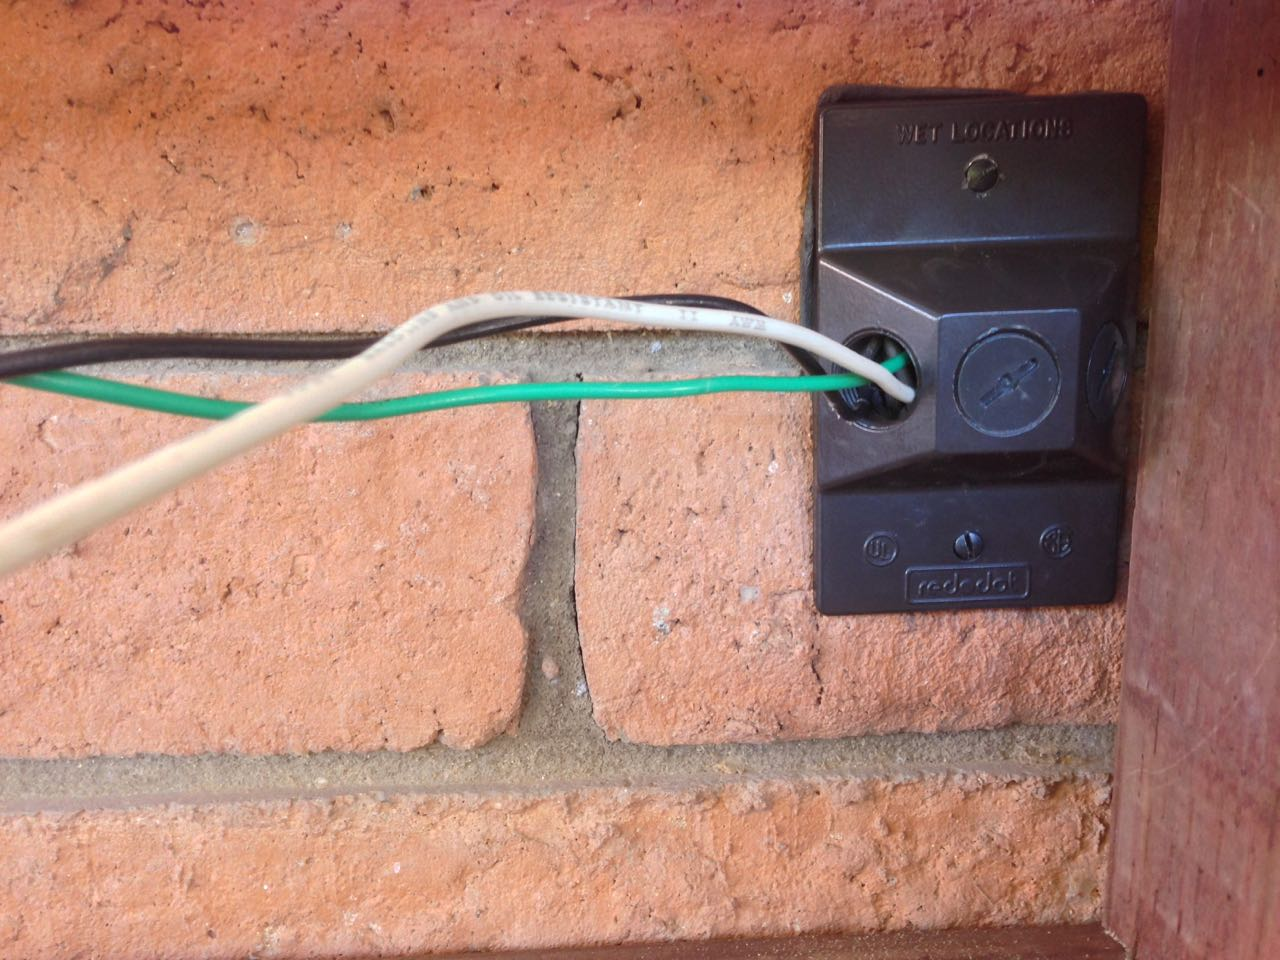 How To Extend An Exterior Electrical Outlet Granworks Conduit For Outdoor Wiring I Had Never Worked With Liquid Tight Flexible Before And Was Excited Try It Out This Project Exceeded My Expectations On Ease Of Use